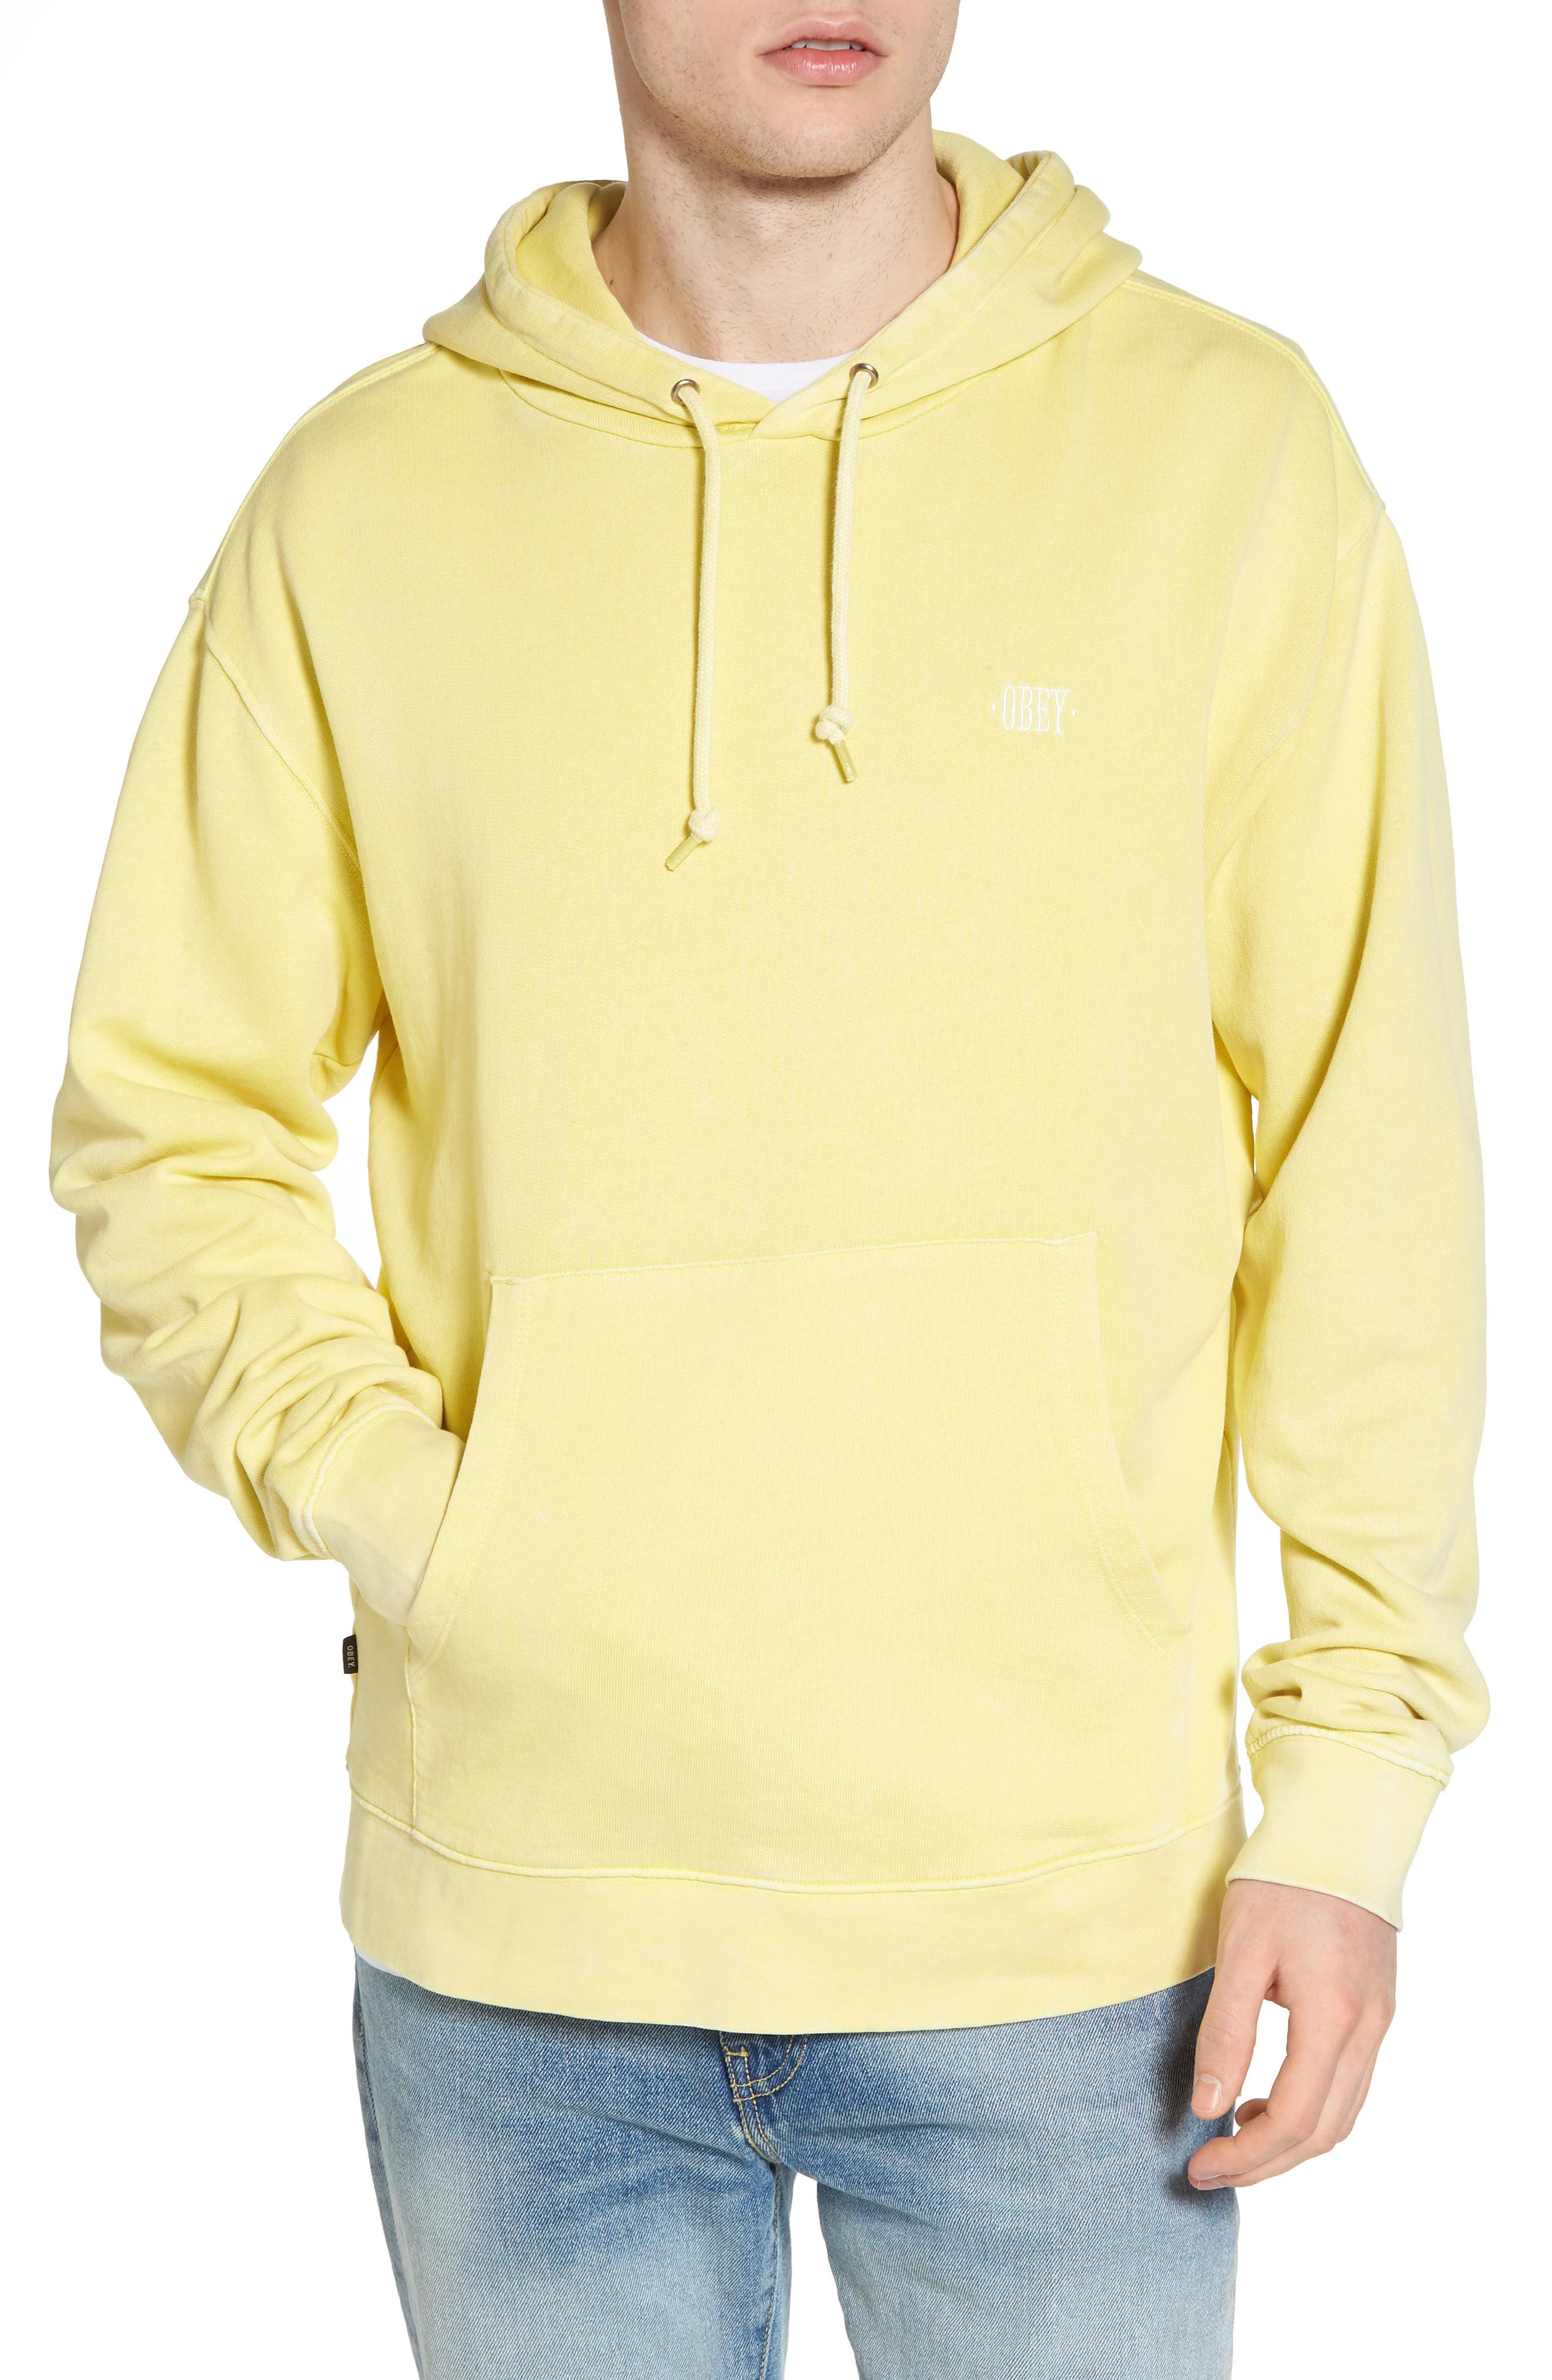 Faded Pigment Dyed Hoodie Sweatshirt,                             Main thumbnail 1, color,                             700